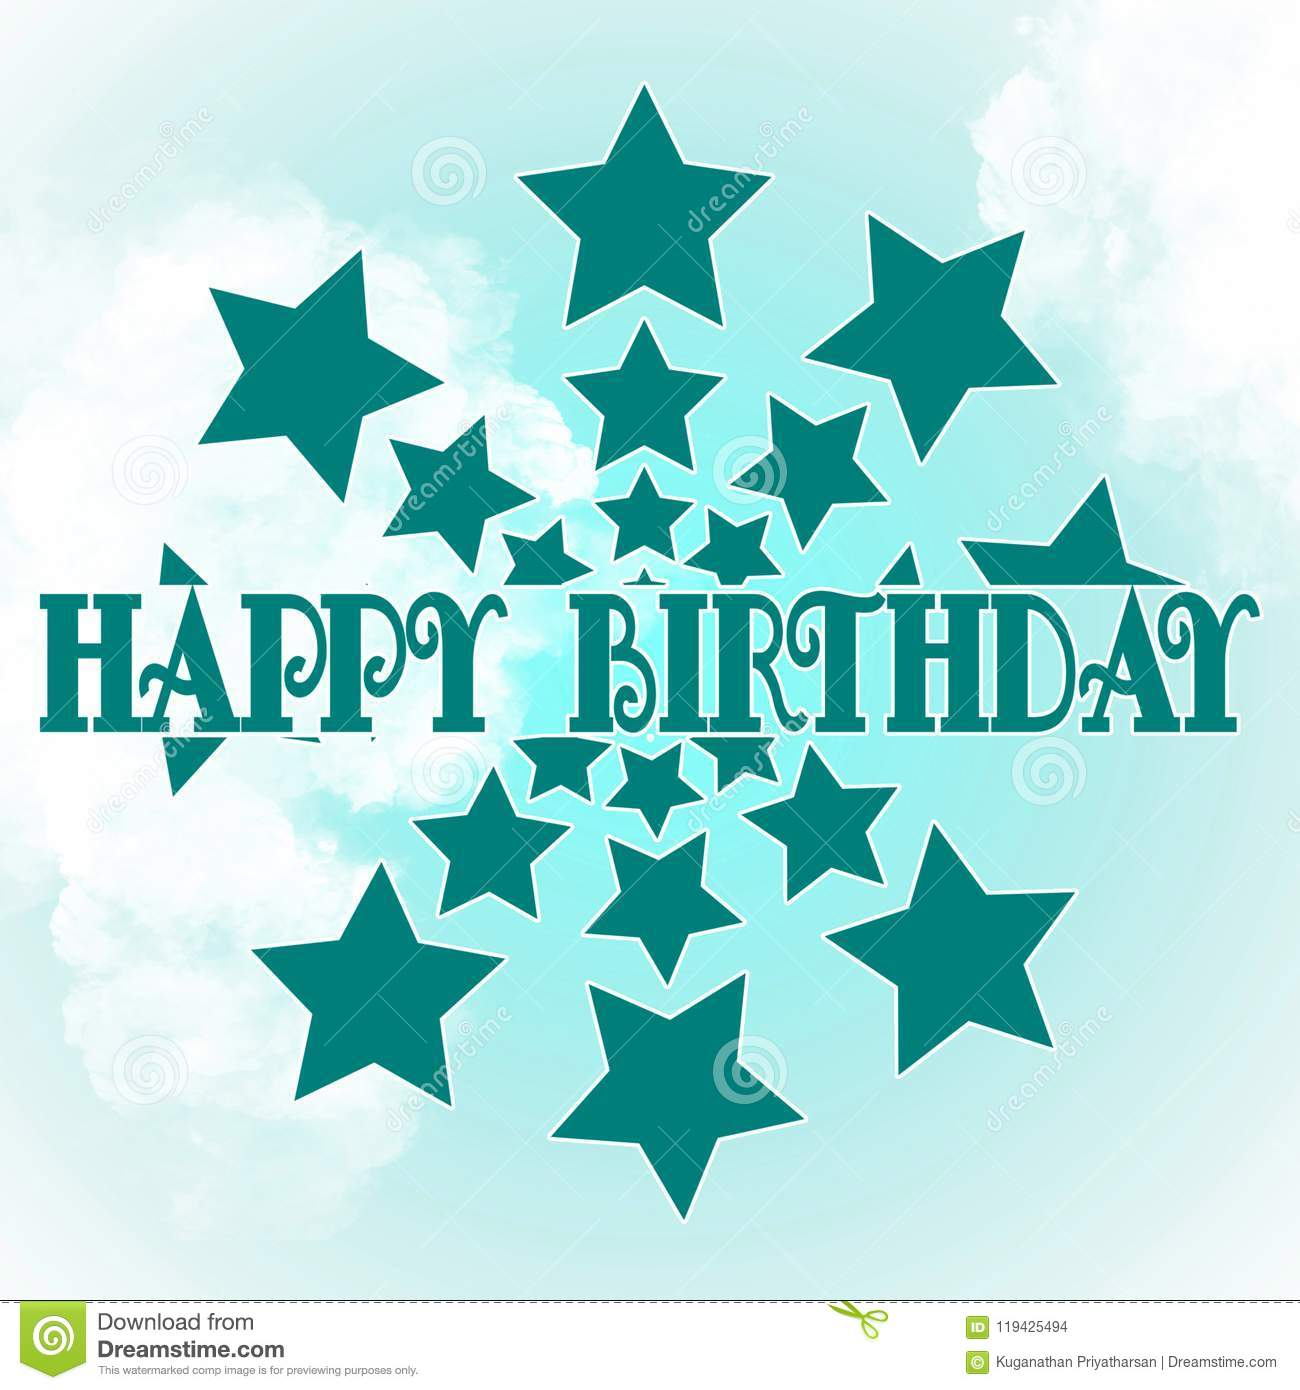 Stylized Textured Template For Birthday Card Light Background With Wishes And Stars